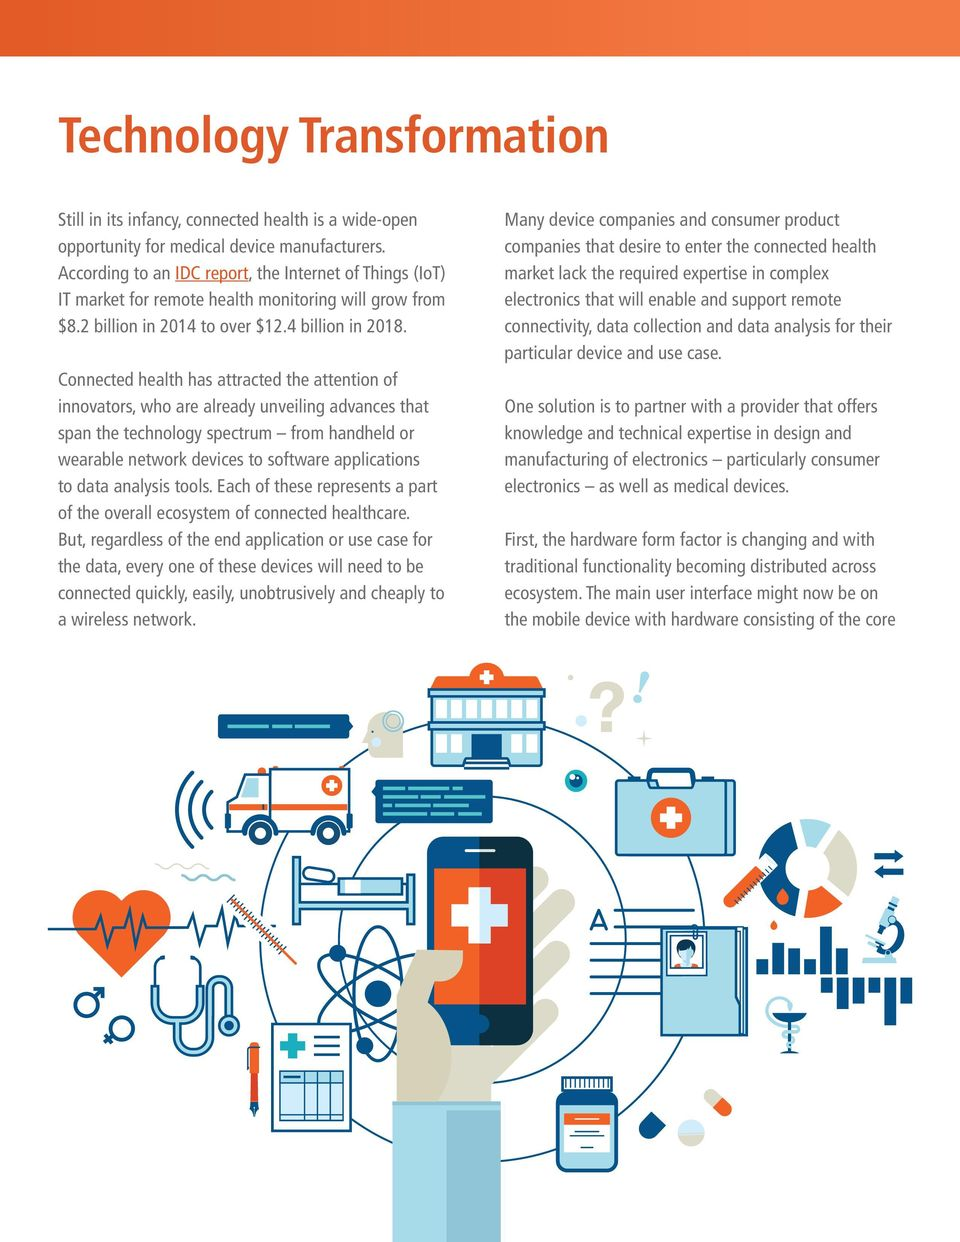 Connected health has attracted the attention of innovators, who are already unveiling advances that span the technology spectrum from handheld or wearable network devices to software applications to